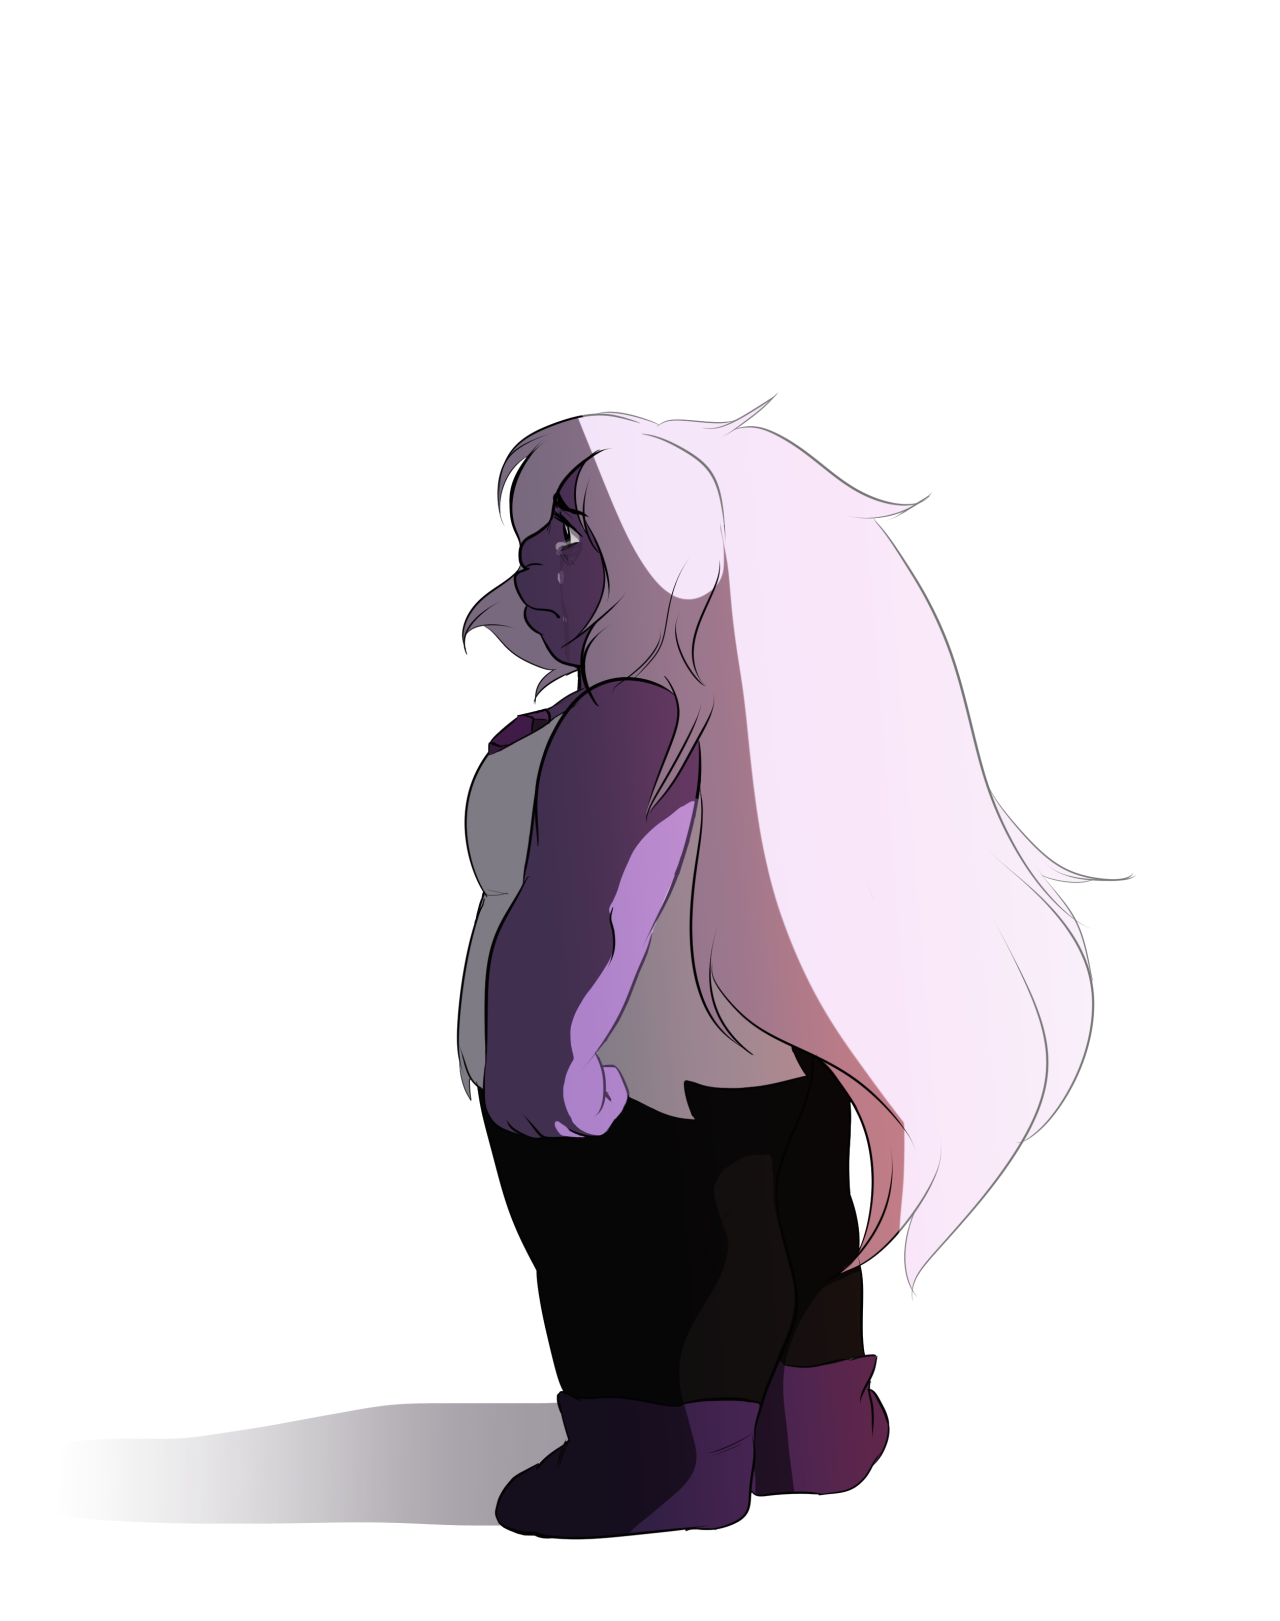 i've been waiting for the Amethyst arc since season one… she's my favorite gem but i never wanted it to be like this,, please protect her